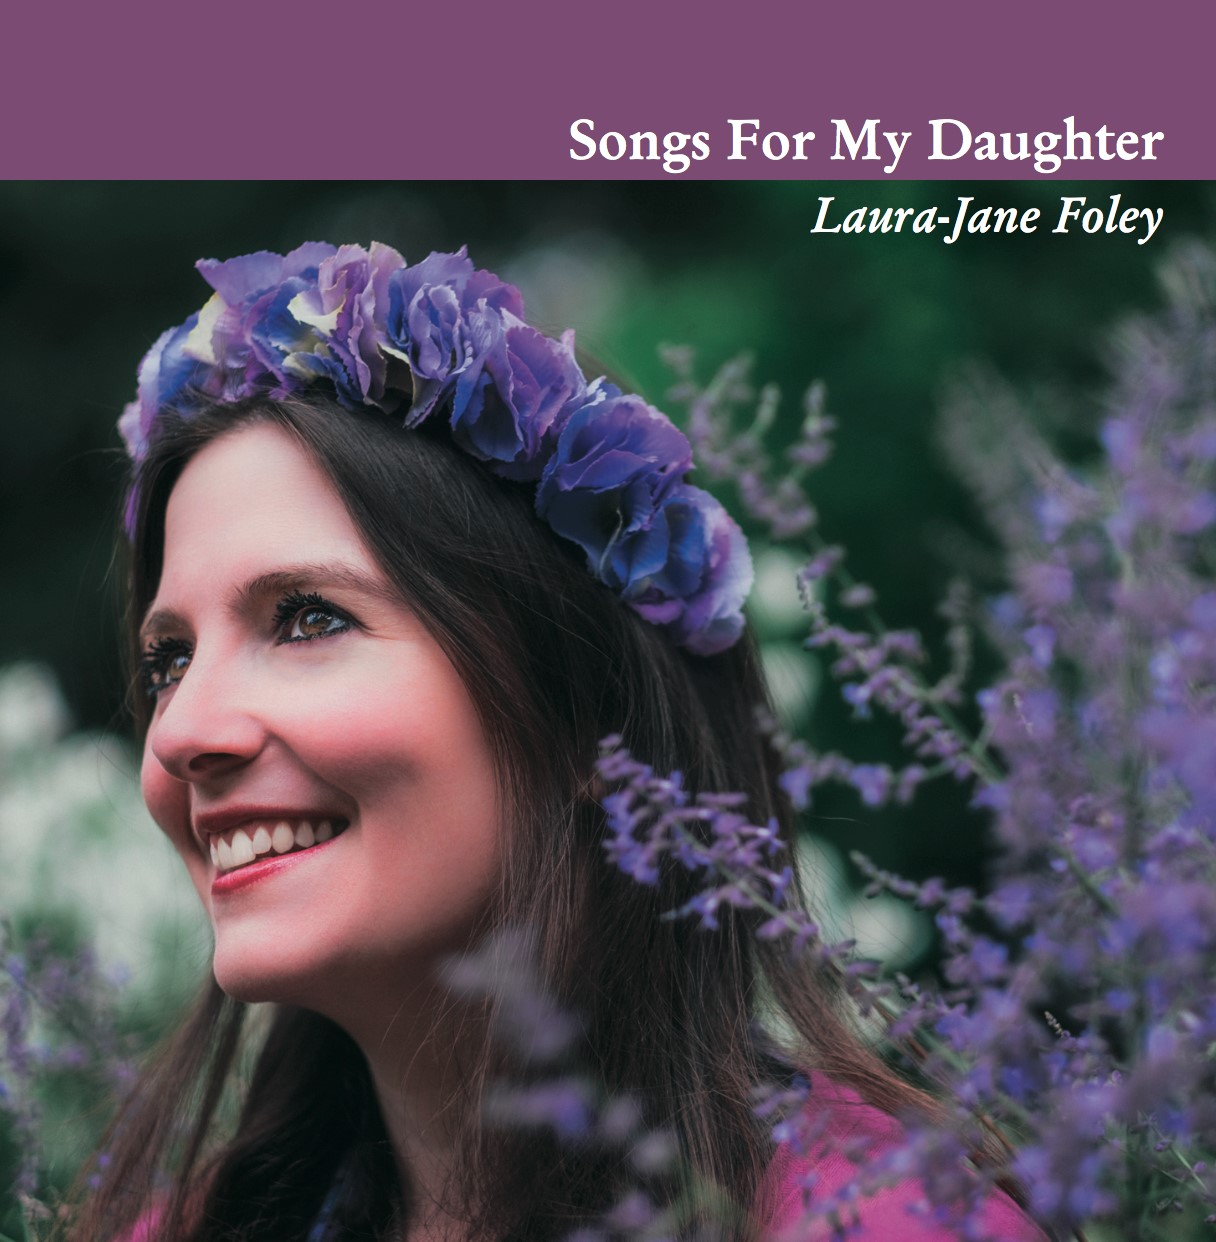 Singer creates music in aid of The Lullaby Trust